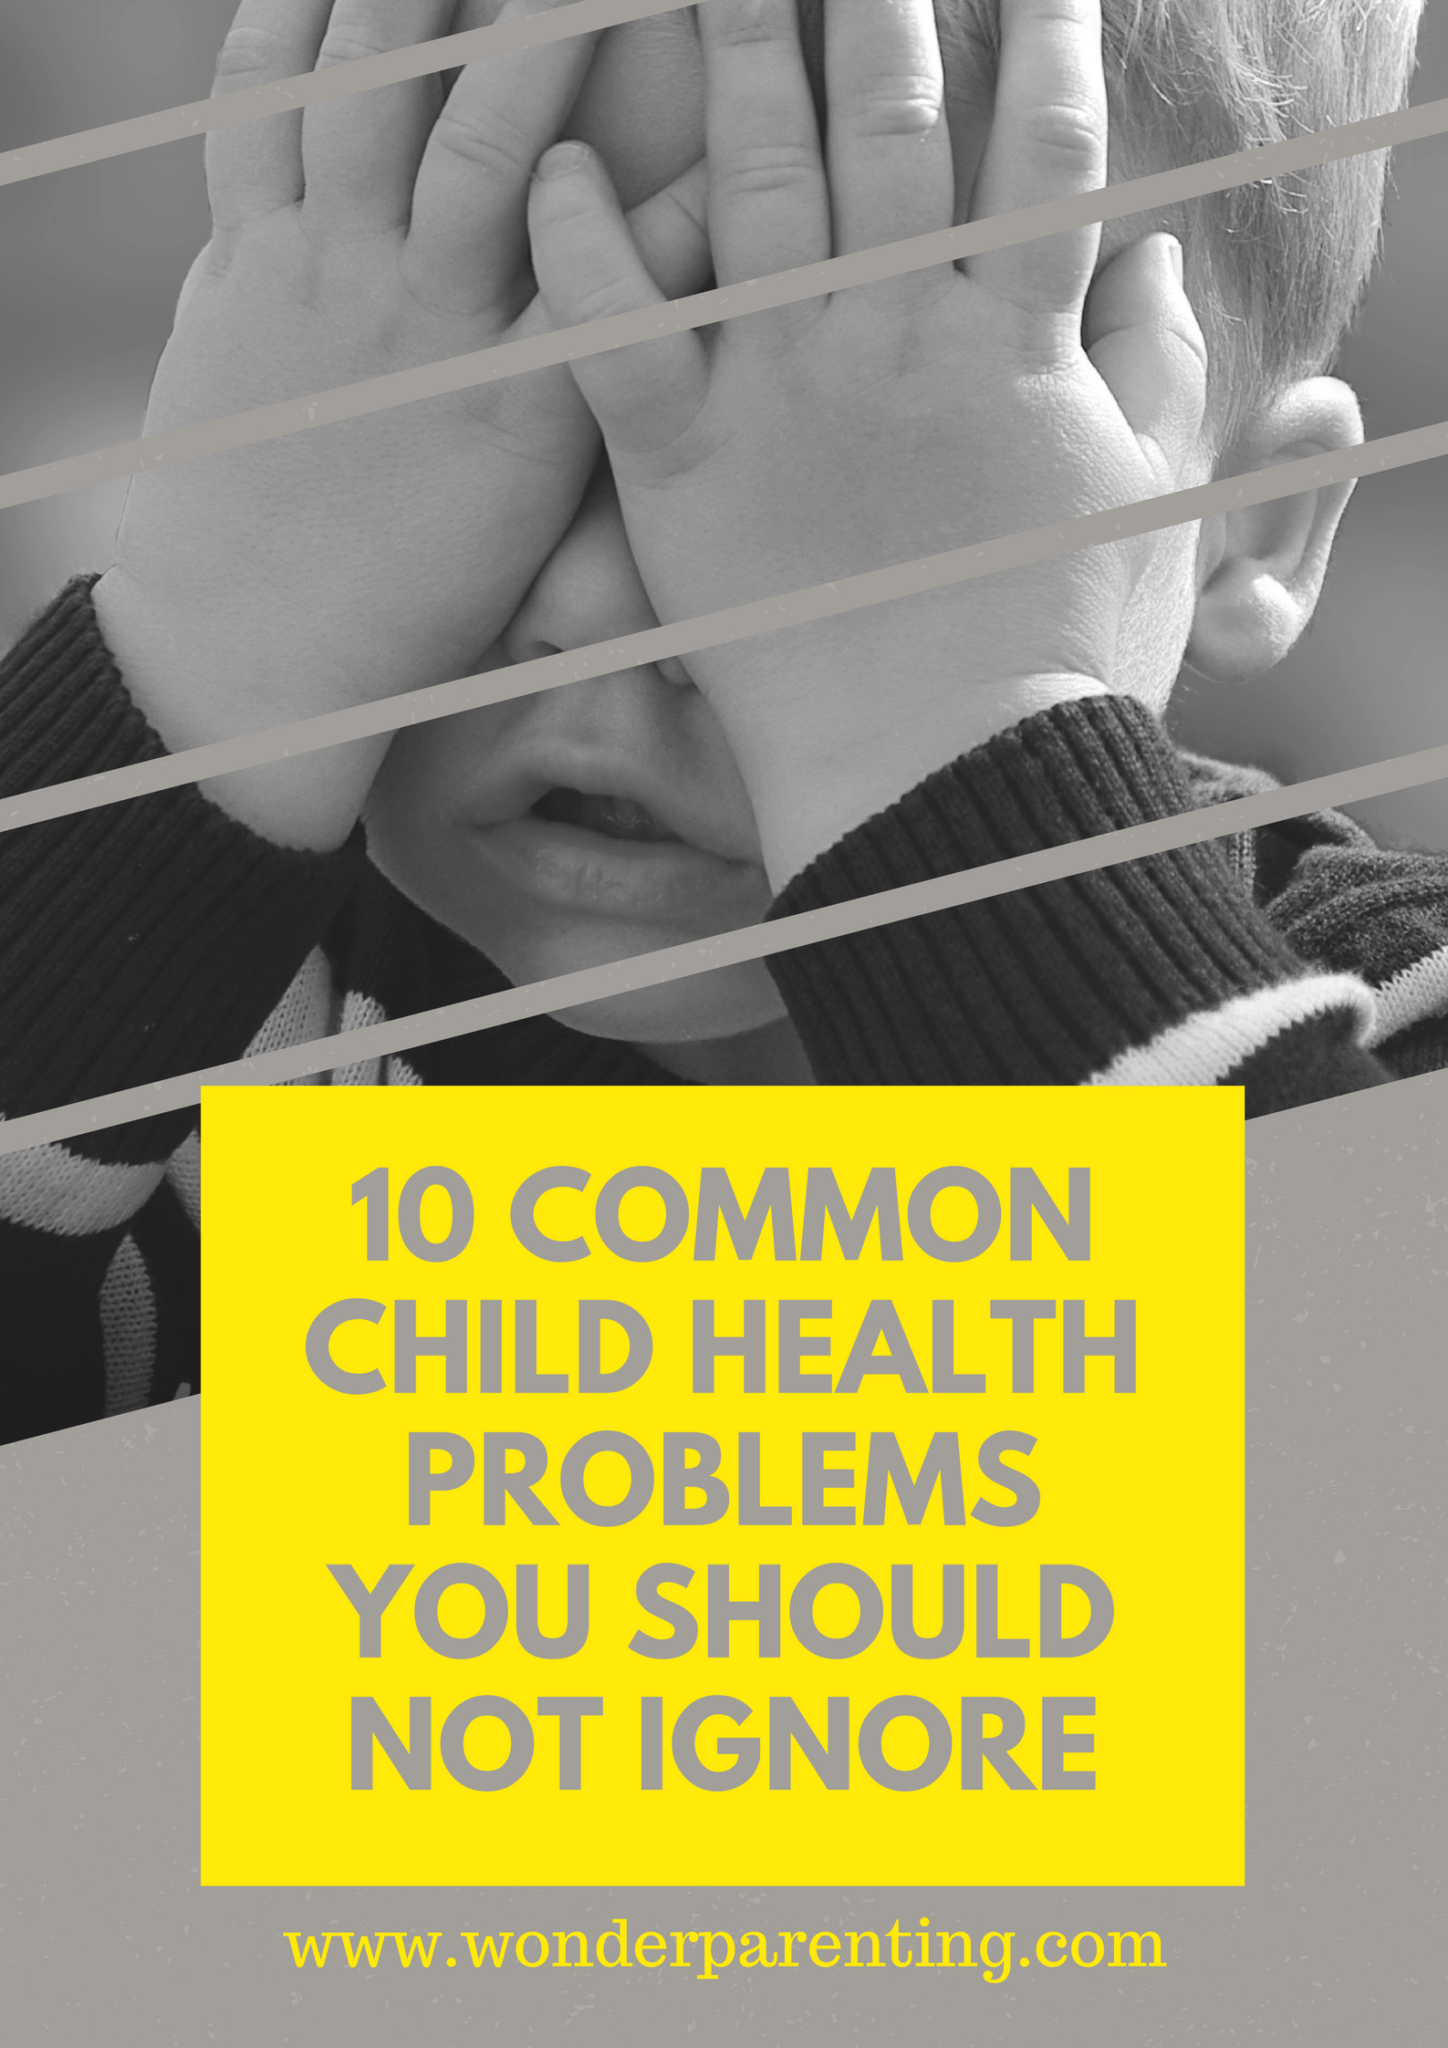 10 COMMON CHILD HEALTH PROBLEMS YOU SHOULD NOT IGNORE-wonderparenting